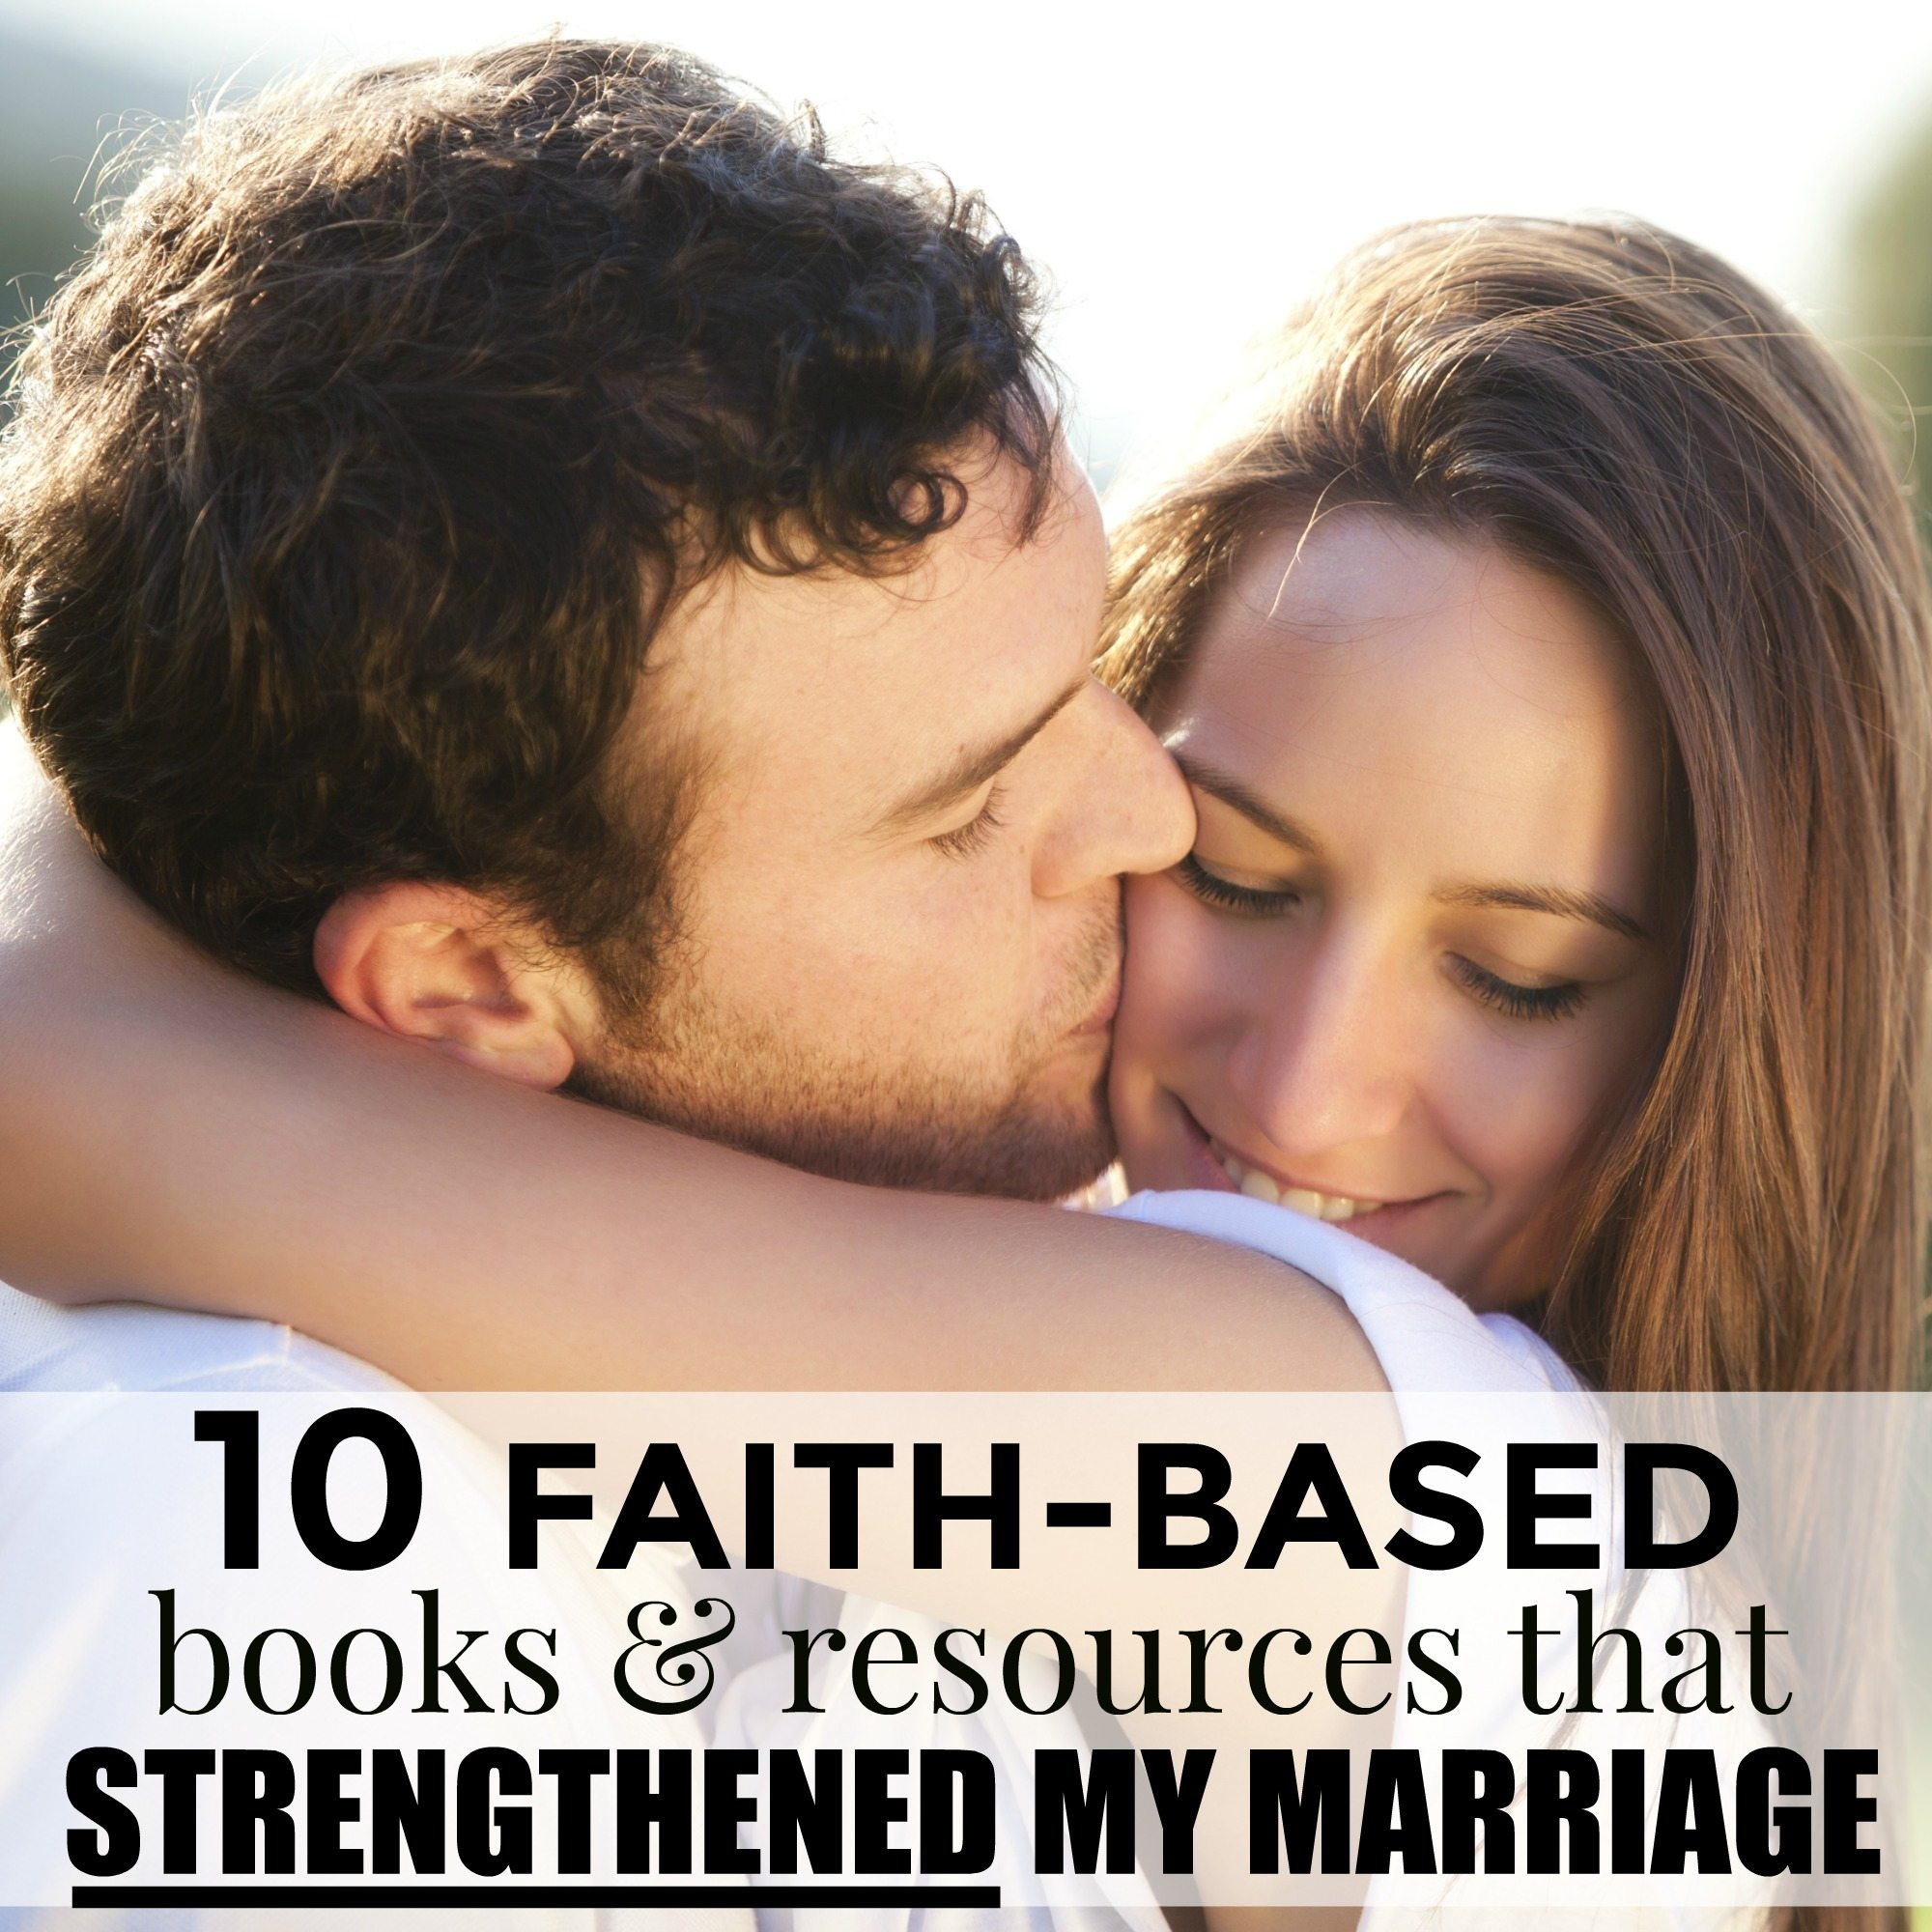 10 FAITH-BASED Books and Resources that STRENGTHENED my Marriage